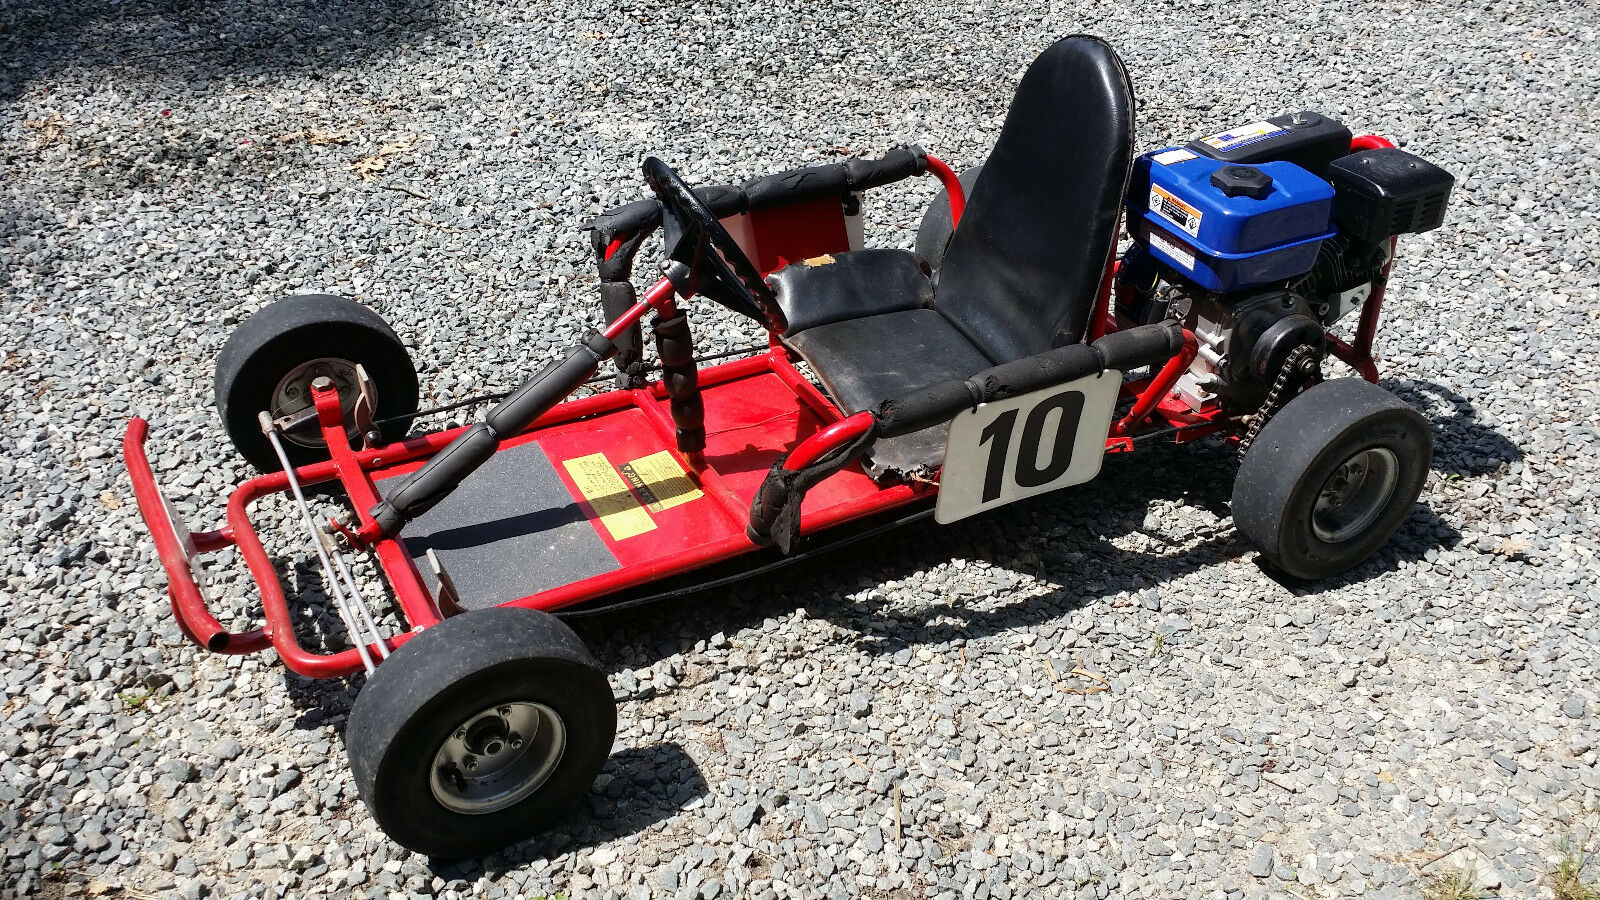 80s 90s Kartco Go Kart Yard Kart With Modified 6 5HP Honda Clone